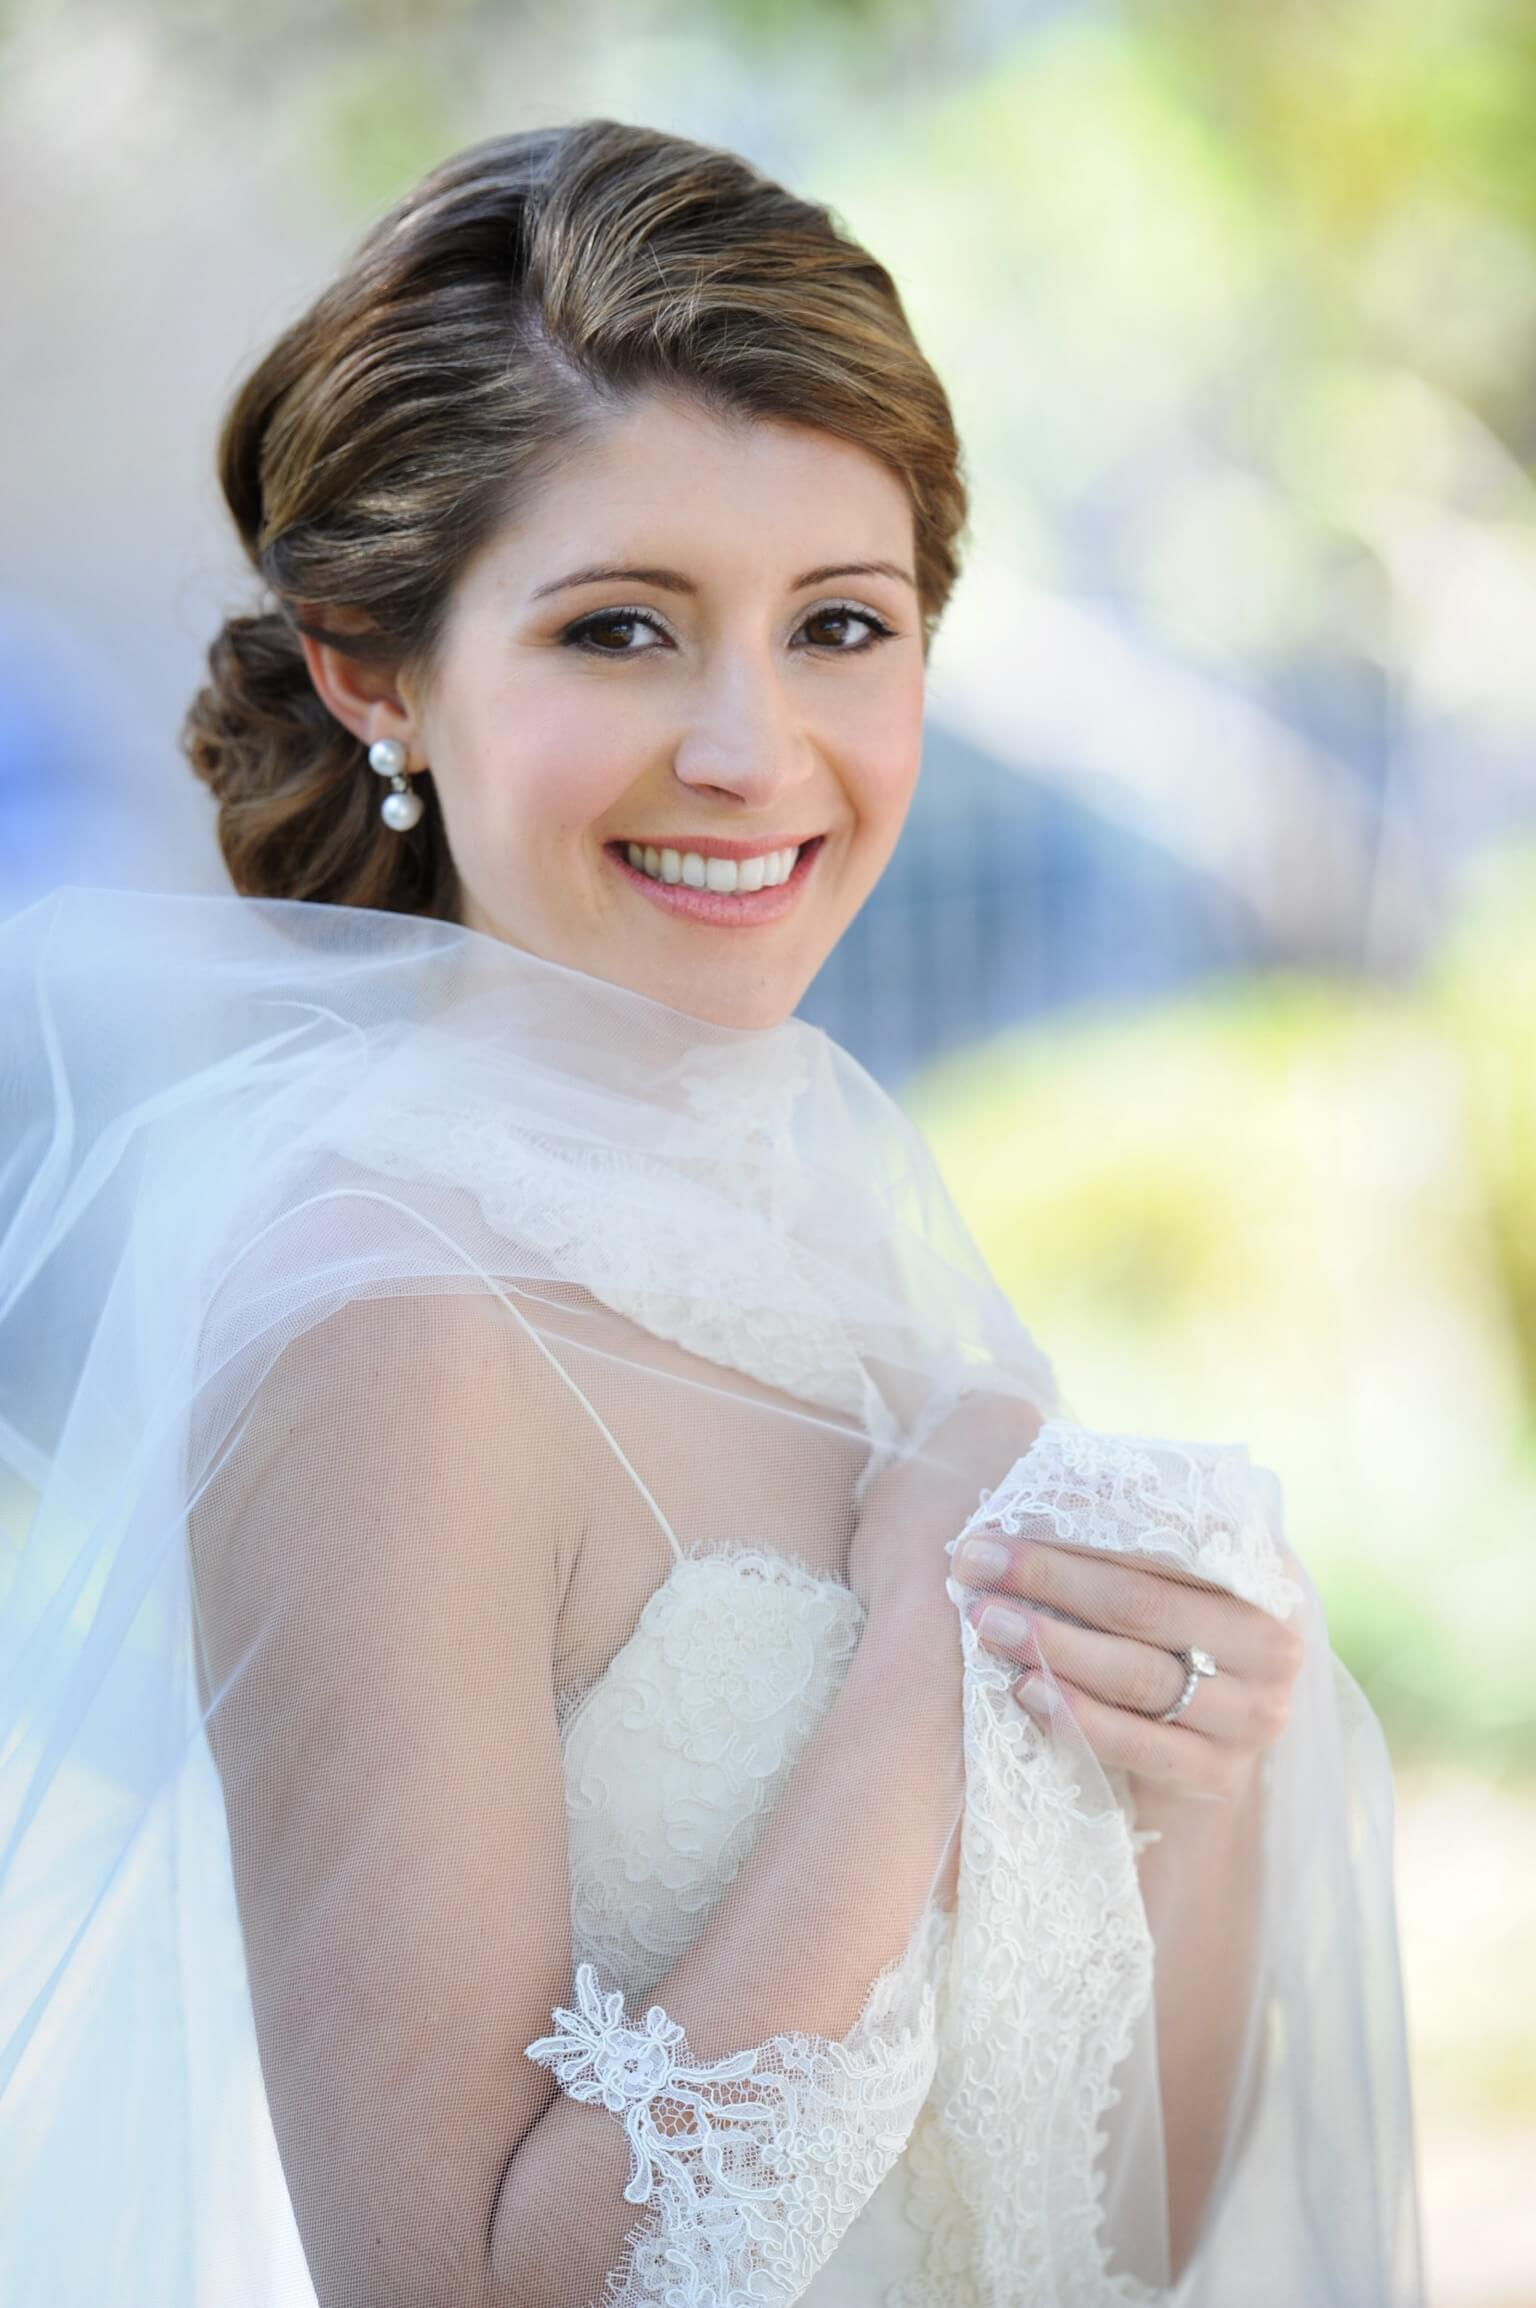 hair-salon-jacksonville-wedding-hairstyles-92